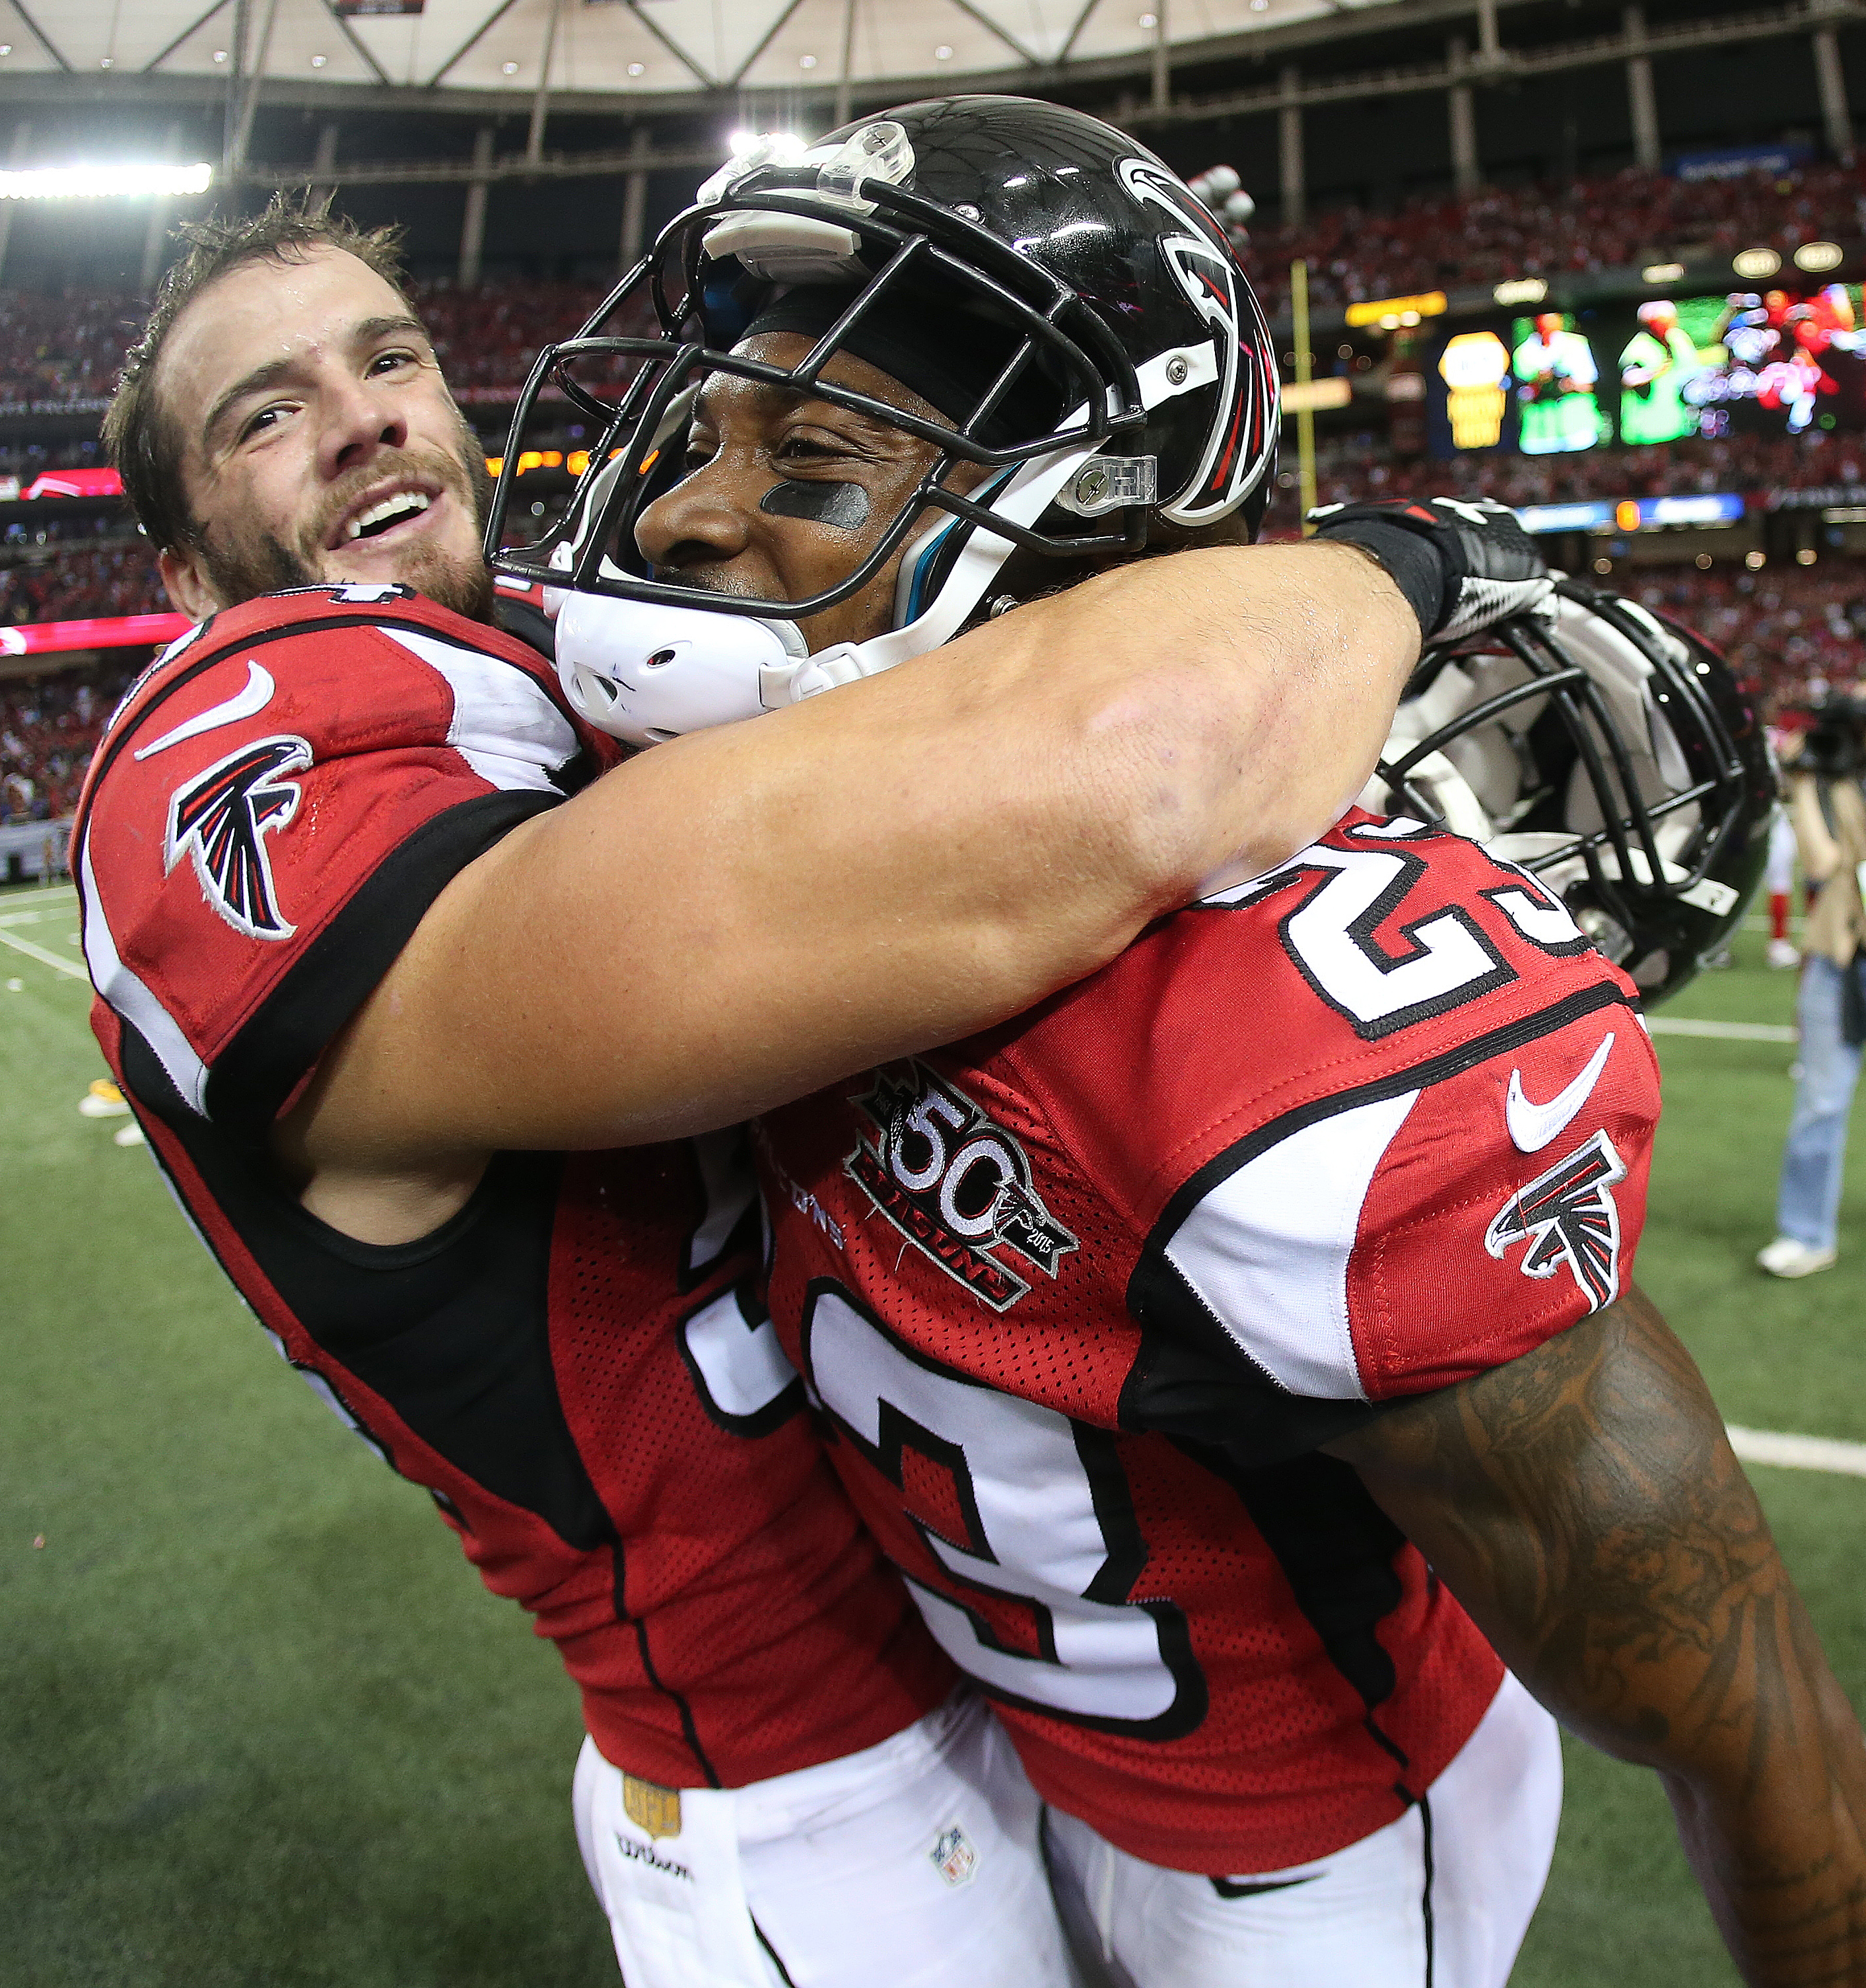 Atlanta Falcons outside linebacker Nate Stupar, left, embraces Atlanta Falcons cornerback Robert Alford (23) after Alford picked off Washington Redskins quarterback Kirk Cousins (8) and scored a touchdown during the overtime of an NFL football game, Sunda